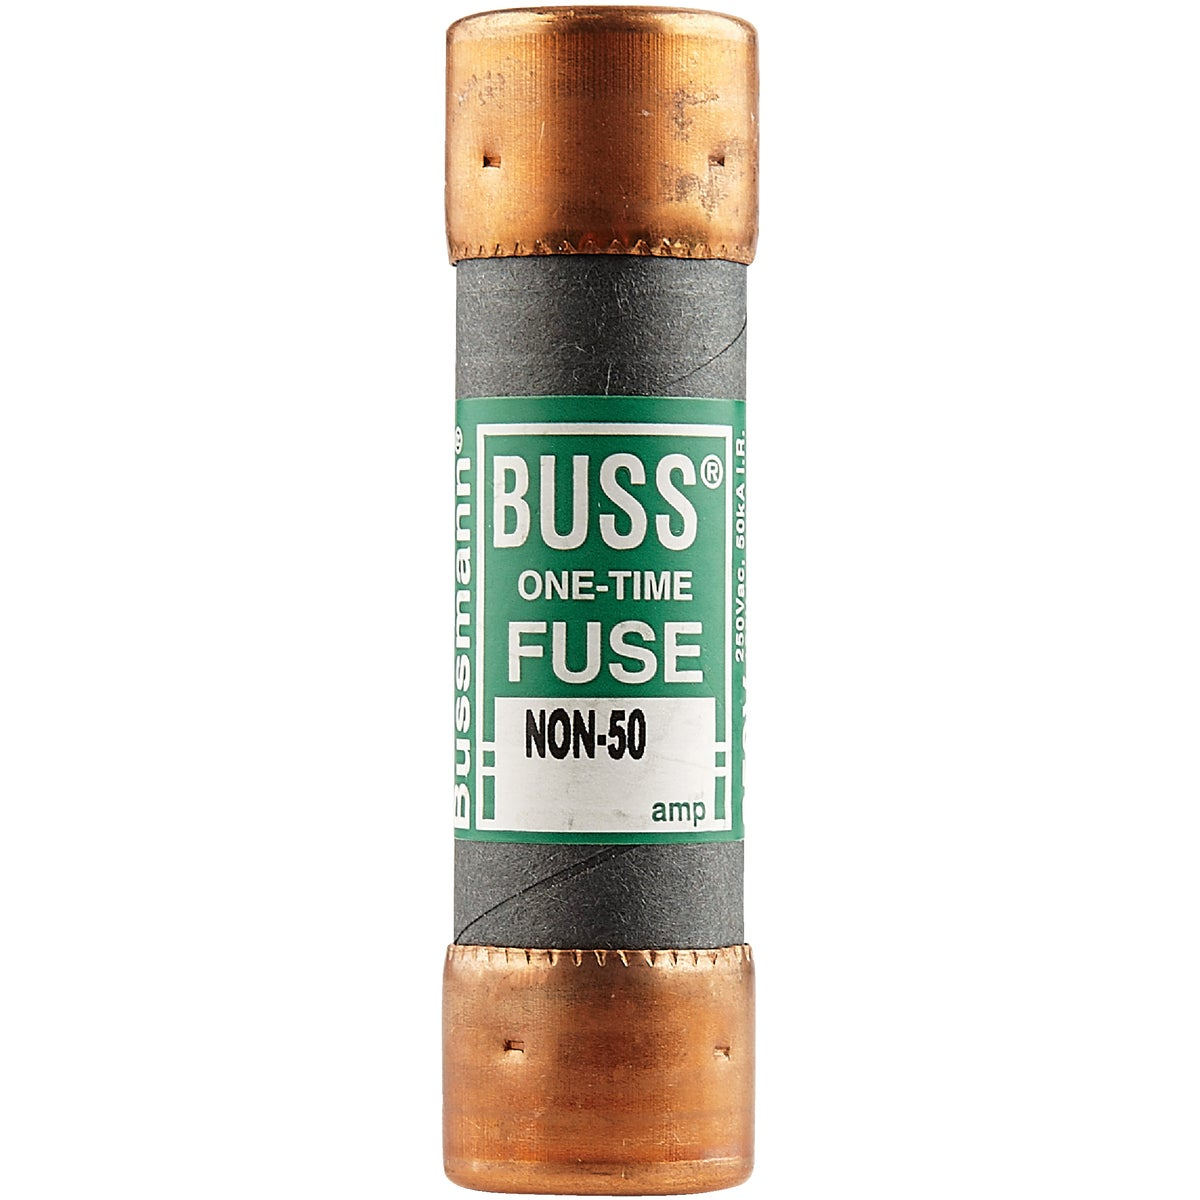 50A NON CARTRIDGE FUSE - NON-50 by Bussmann Cooper